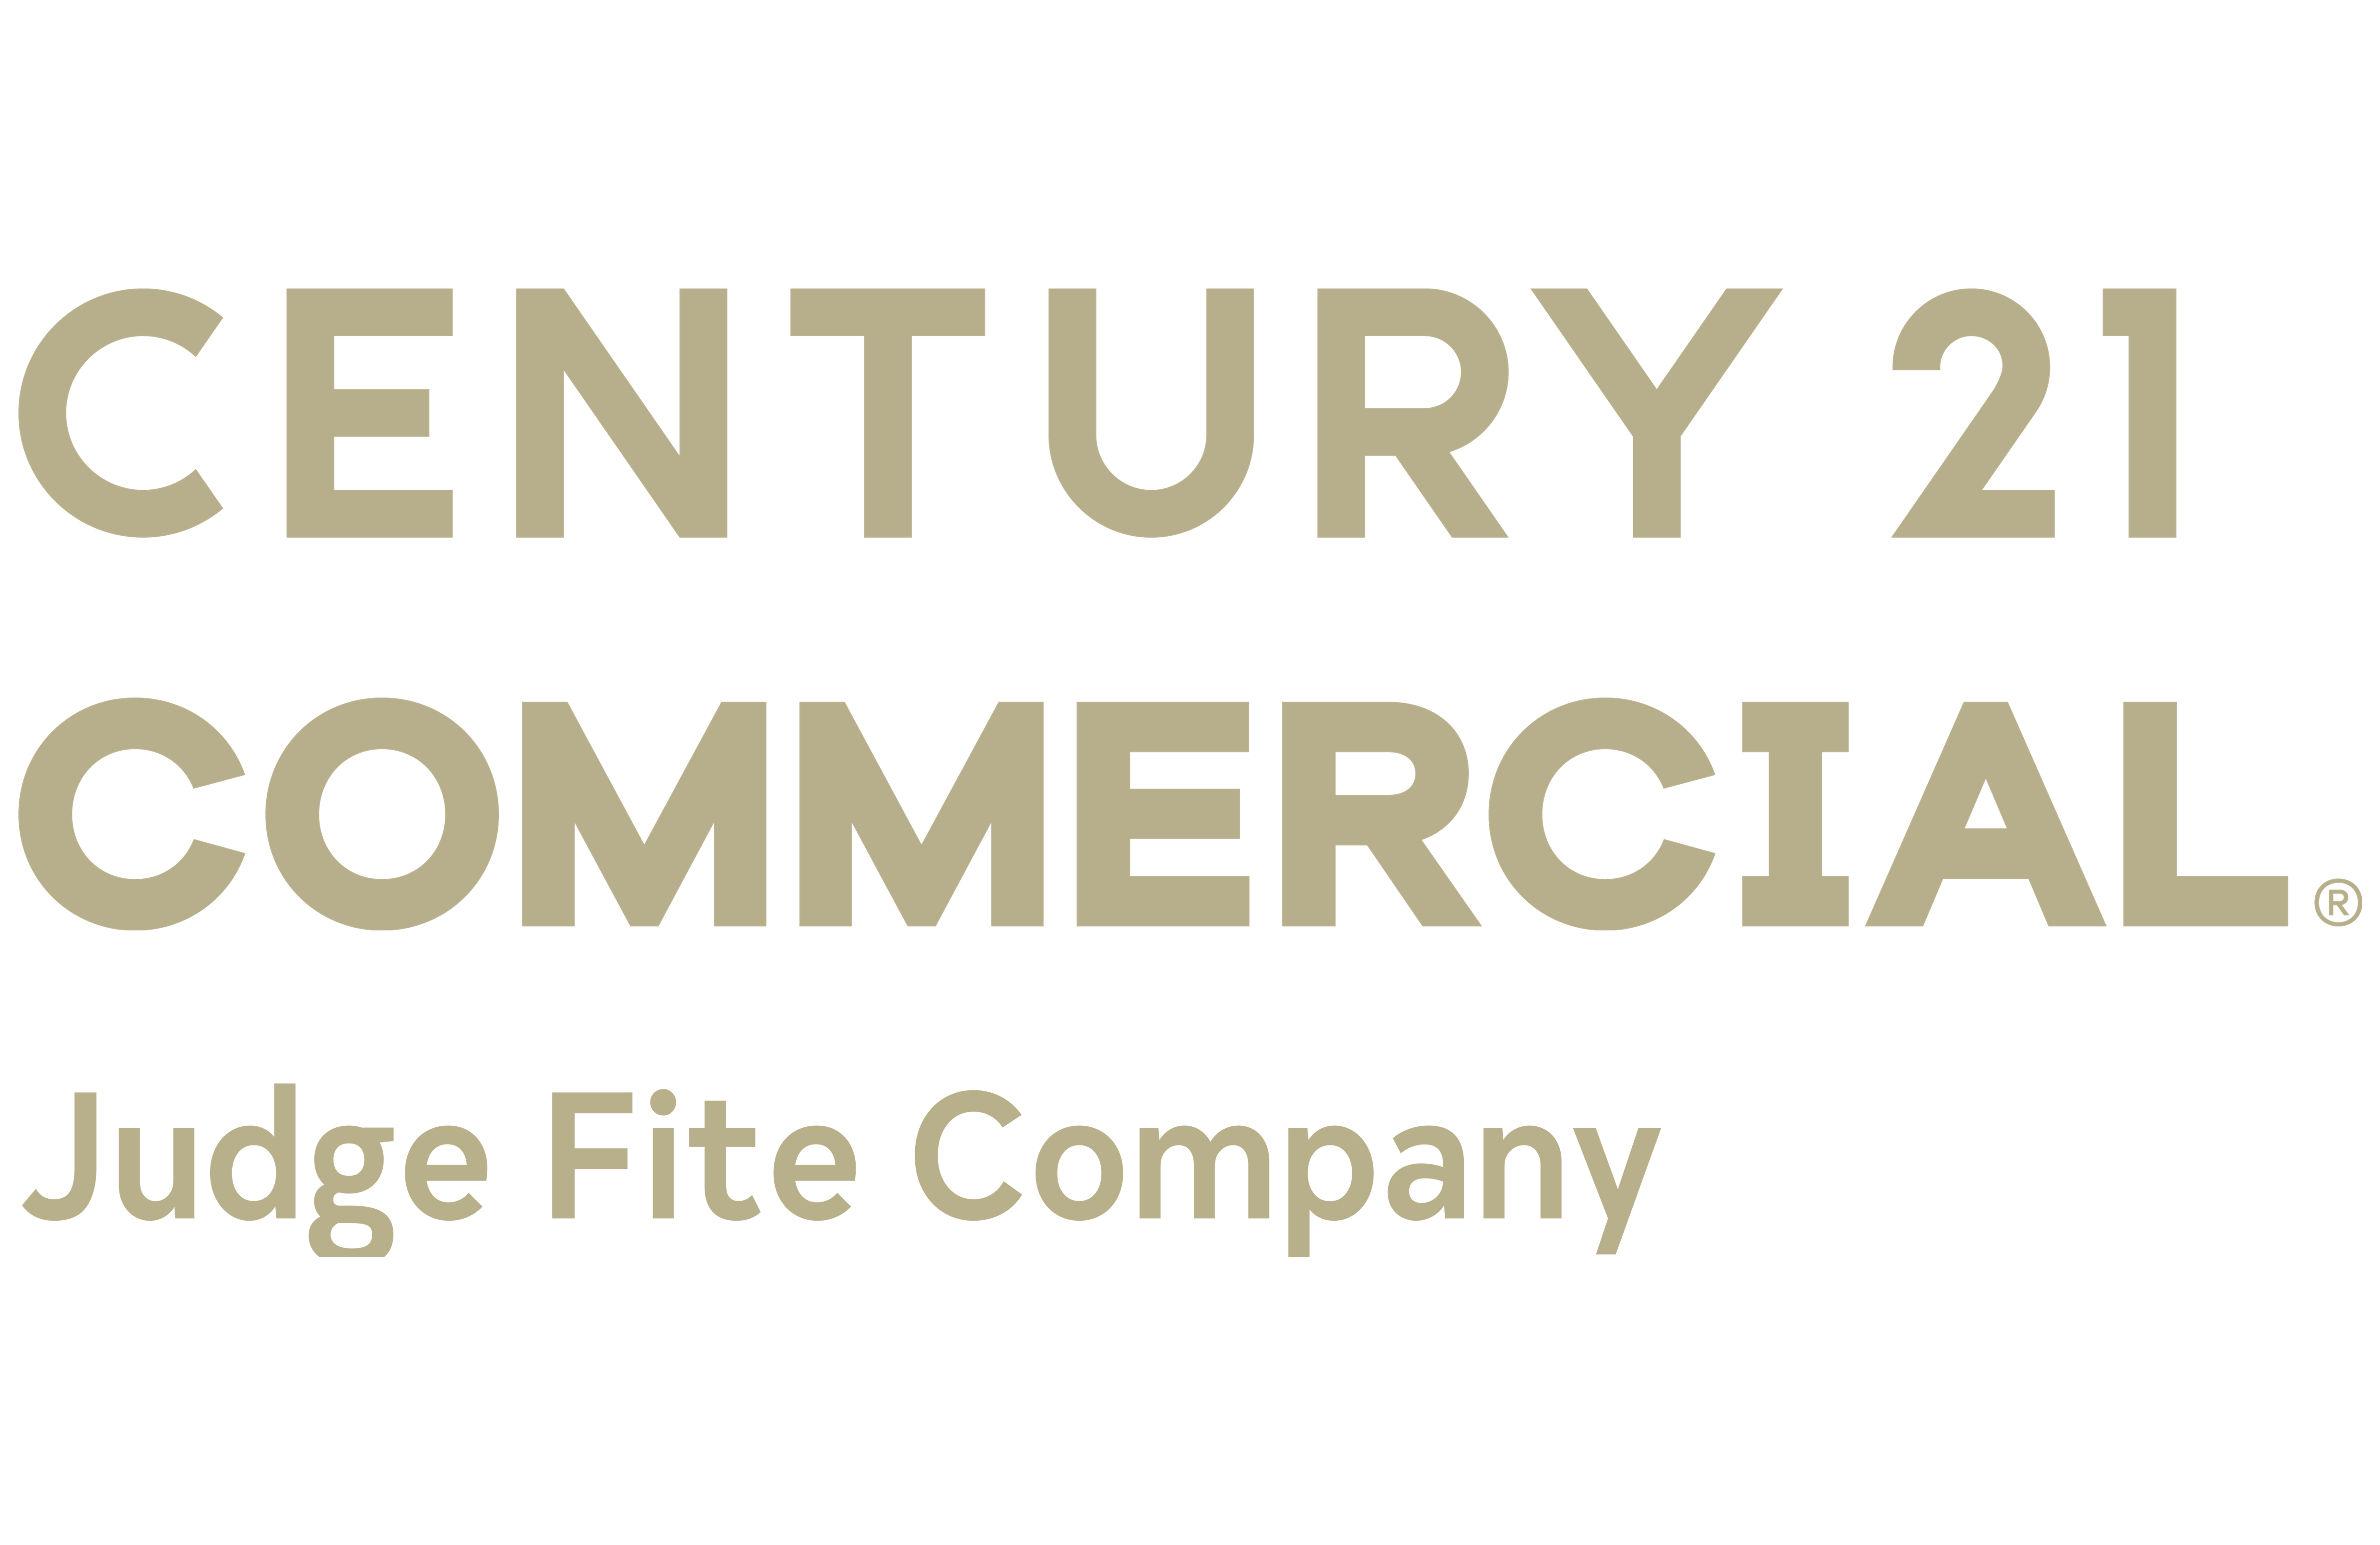 Jim Duncan of CENTURY 21 Judge Fite Company logo